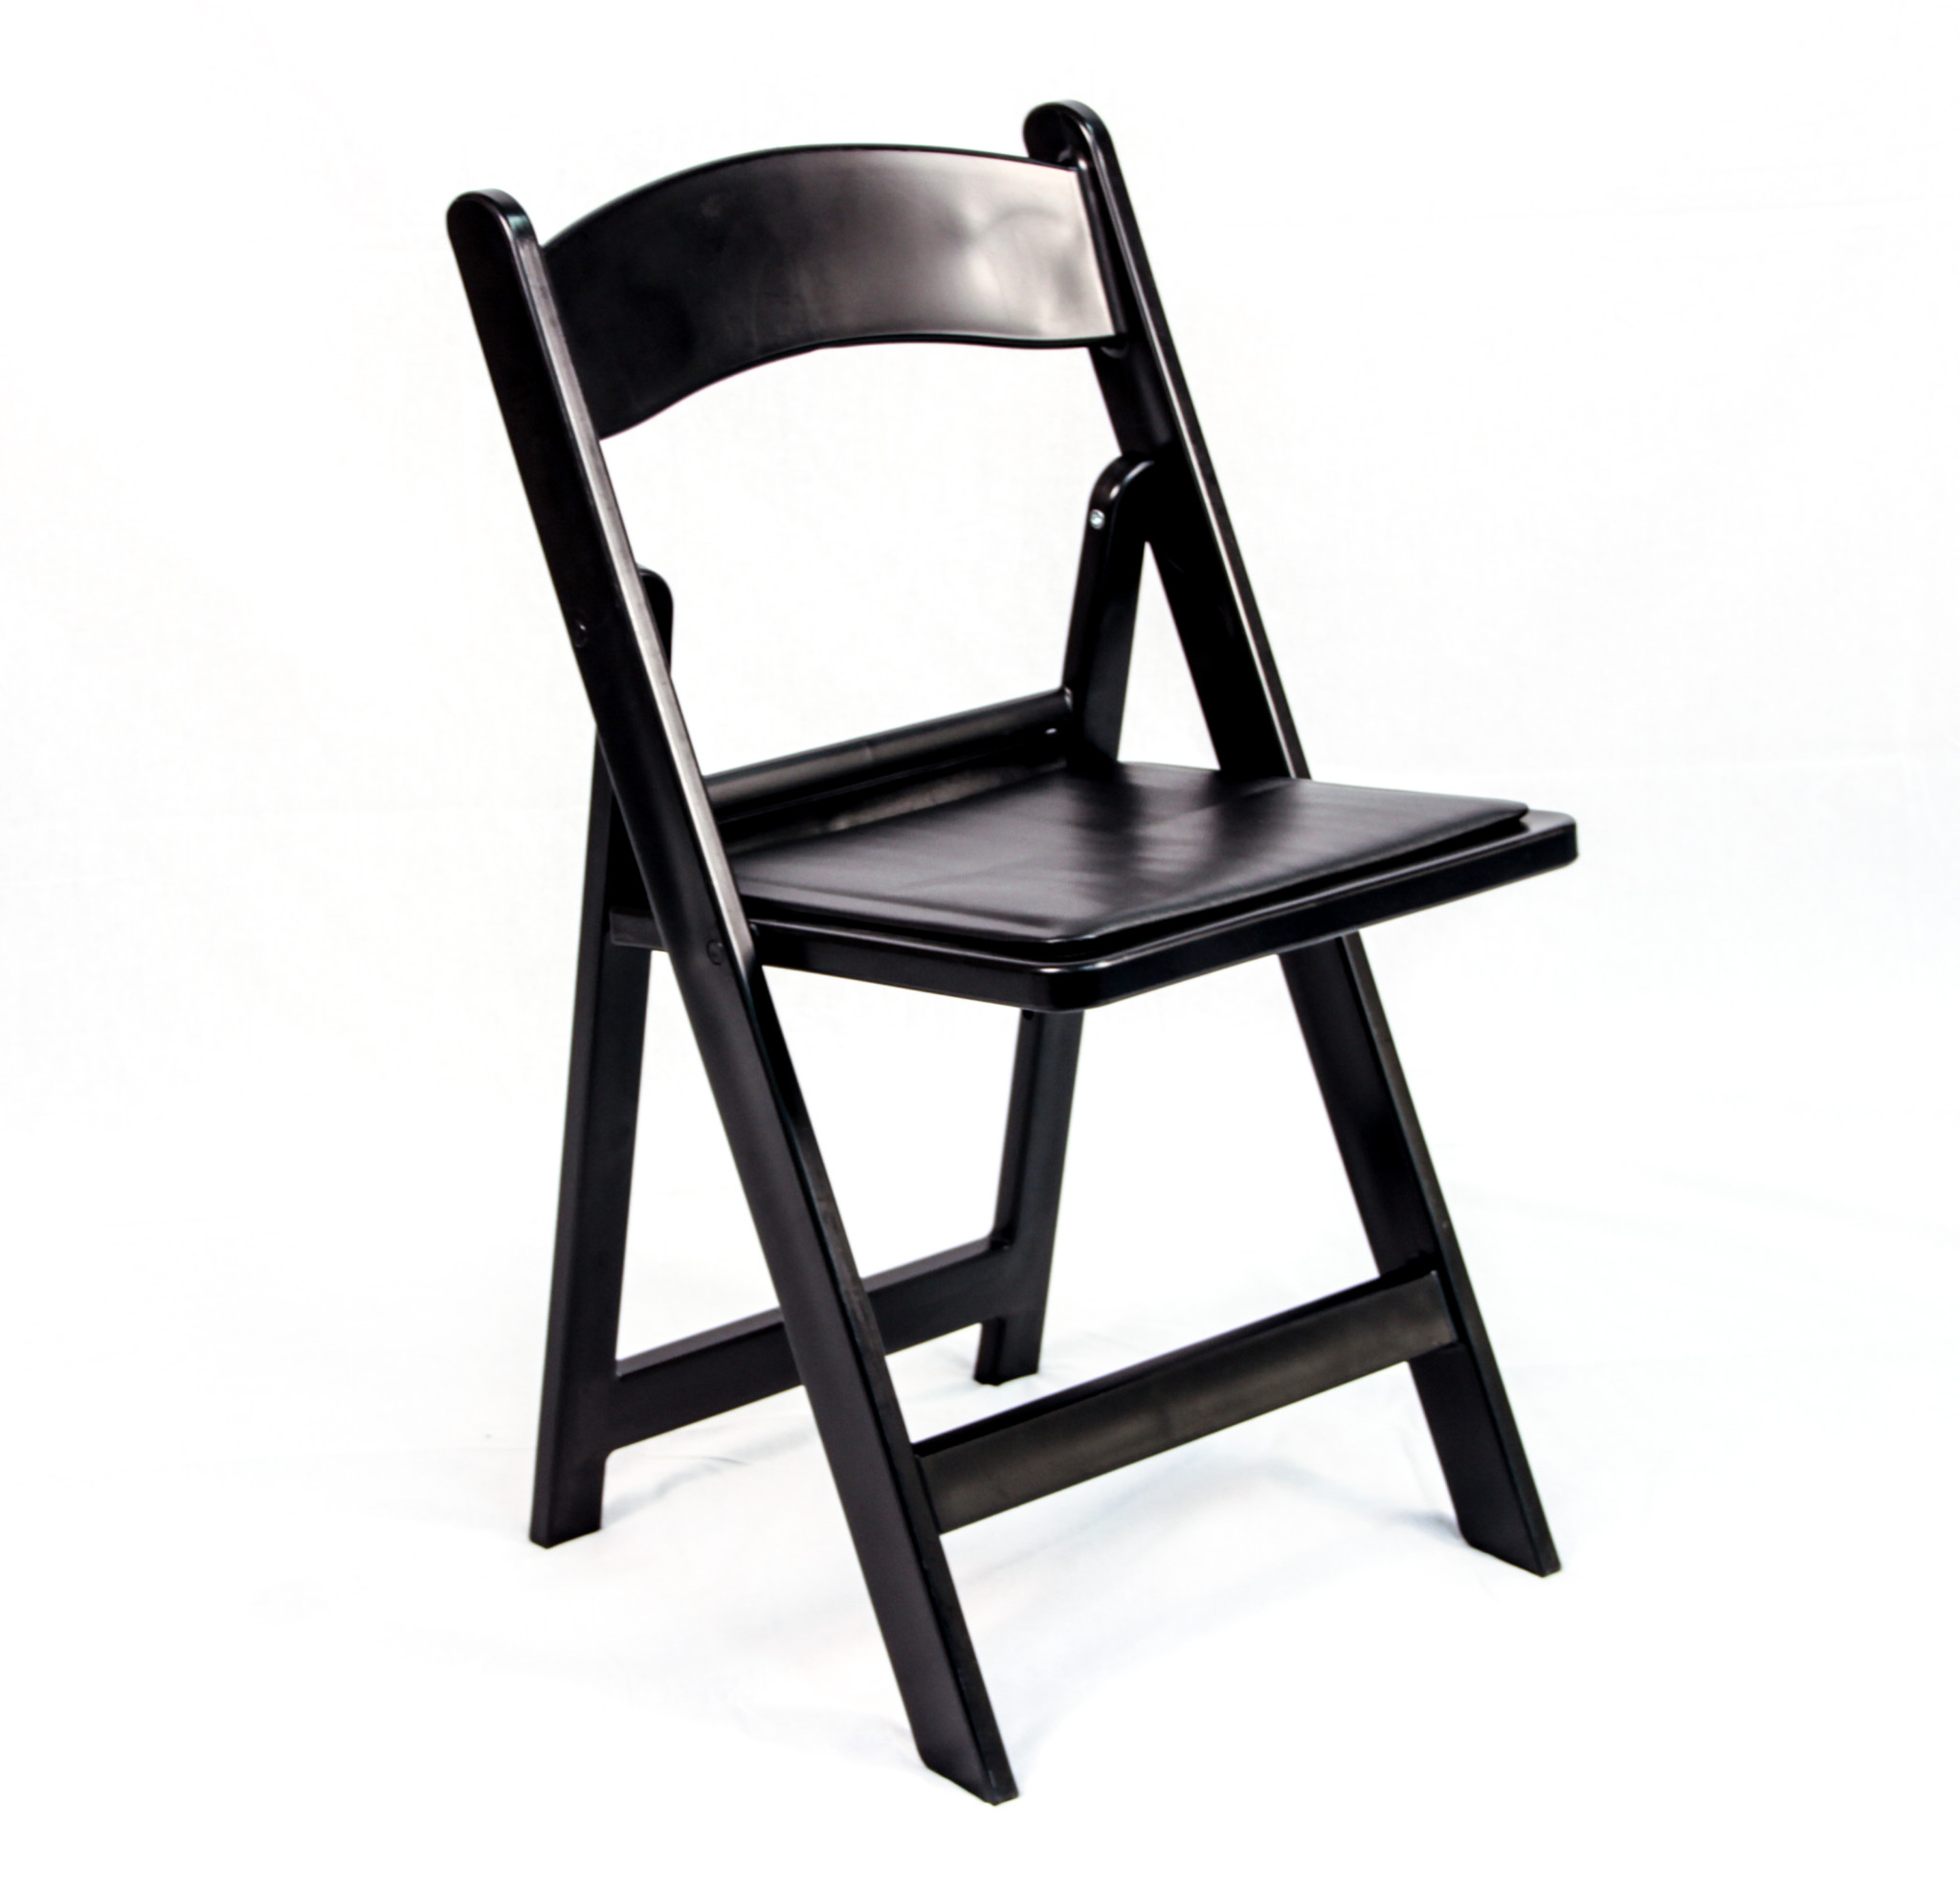 Black Resin Folding Chair with Padded Seat  Peter